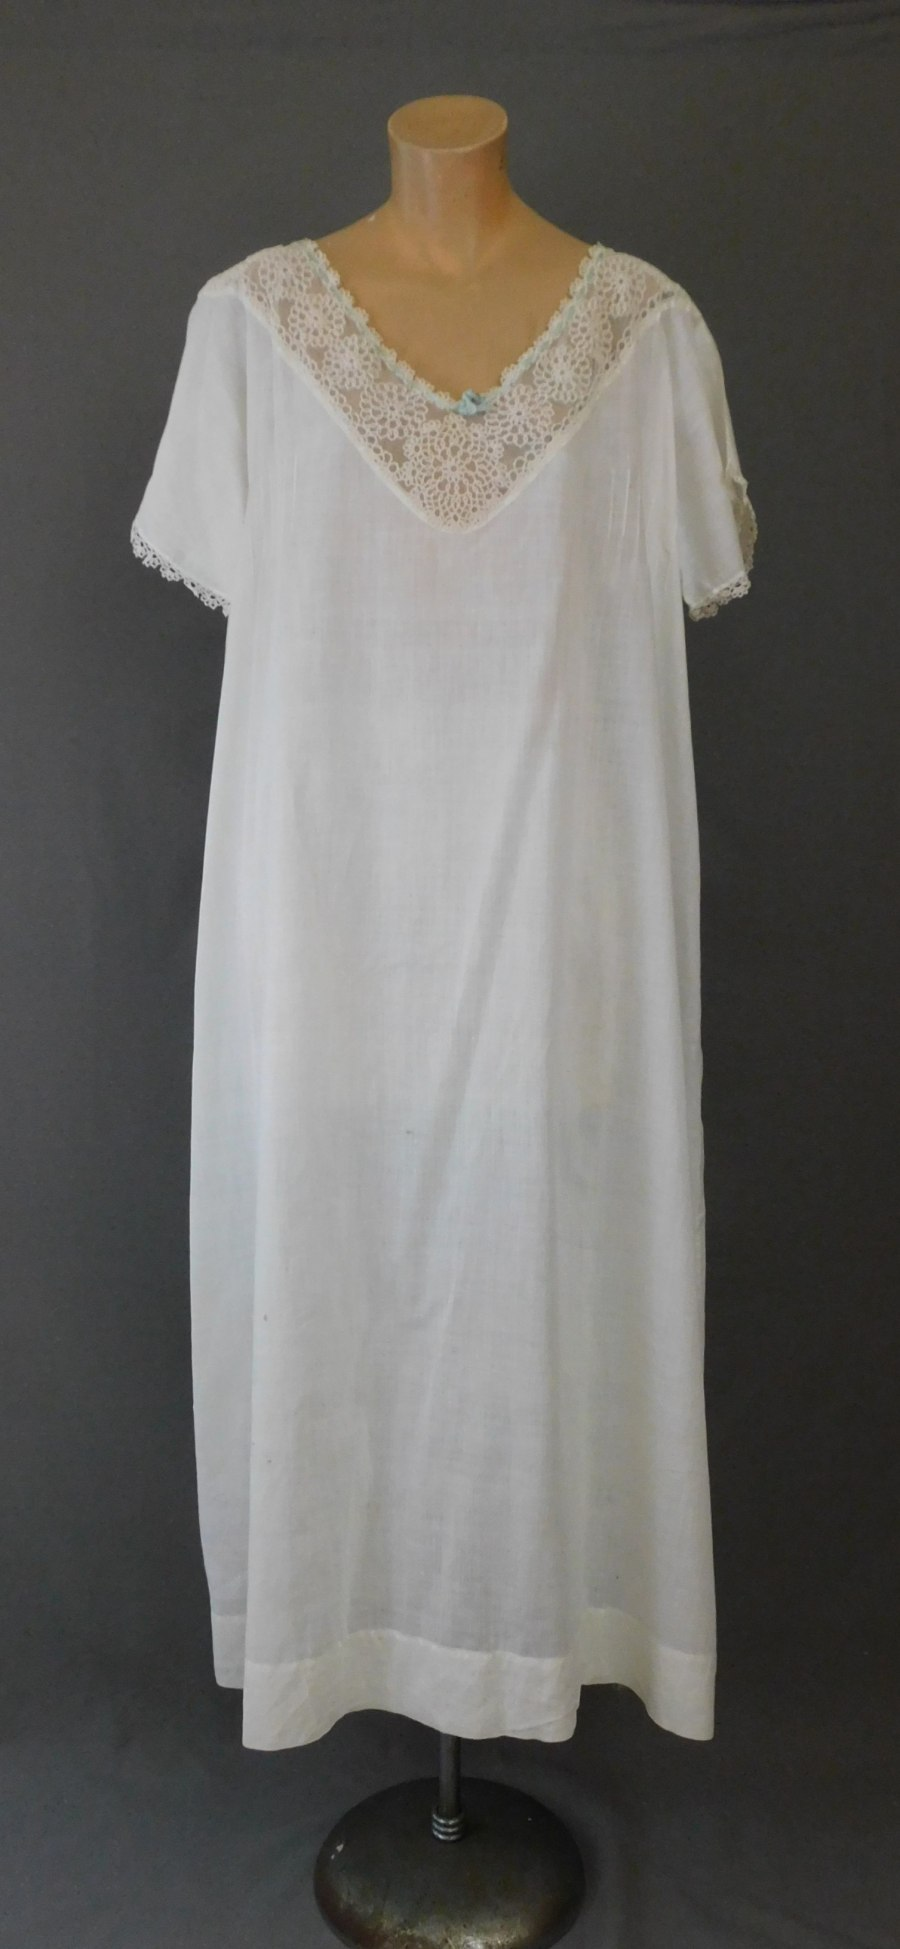 Vintage Edwardian Nightgown, 1900s White Cotton with Lace, fits 44 inch bust